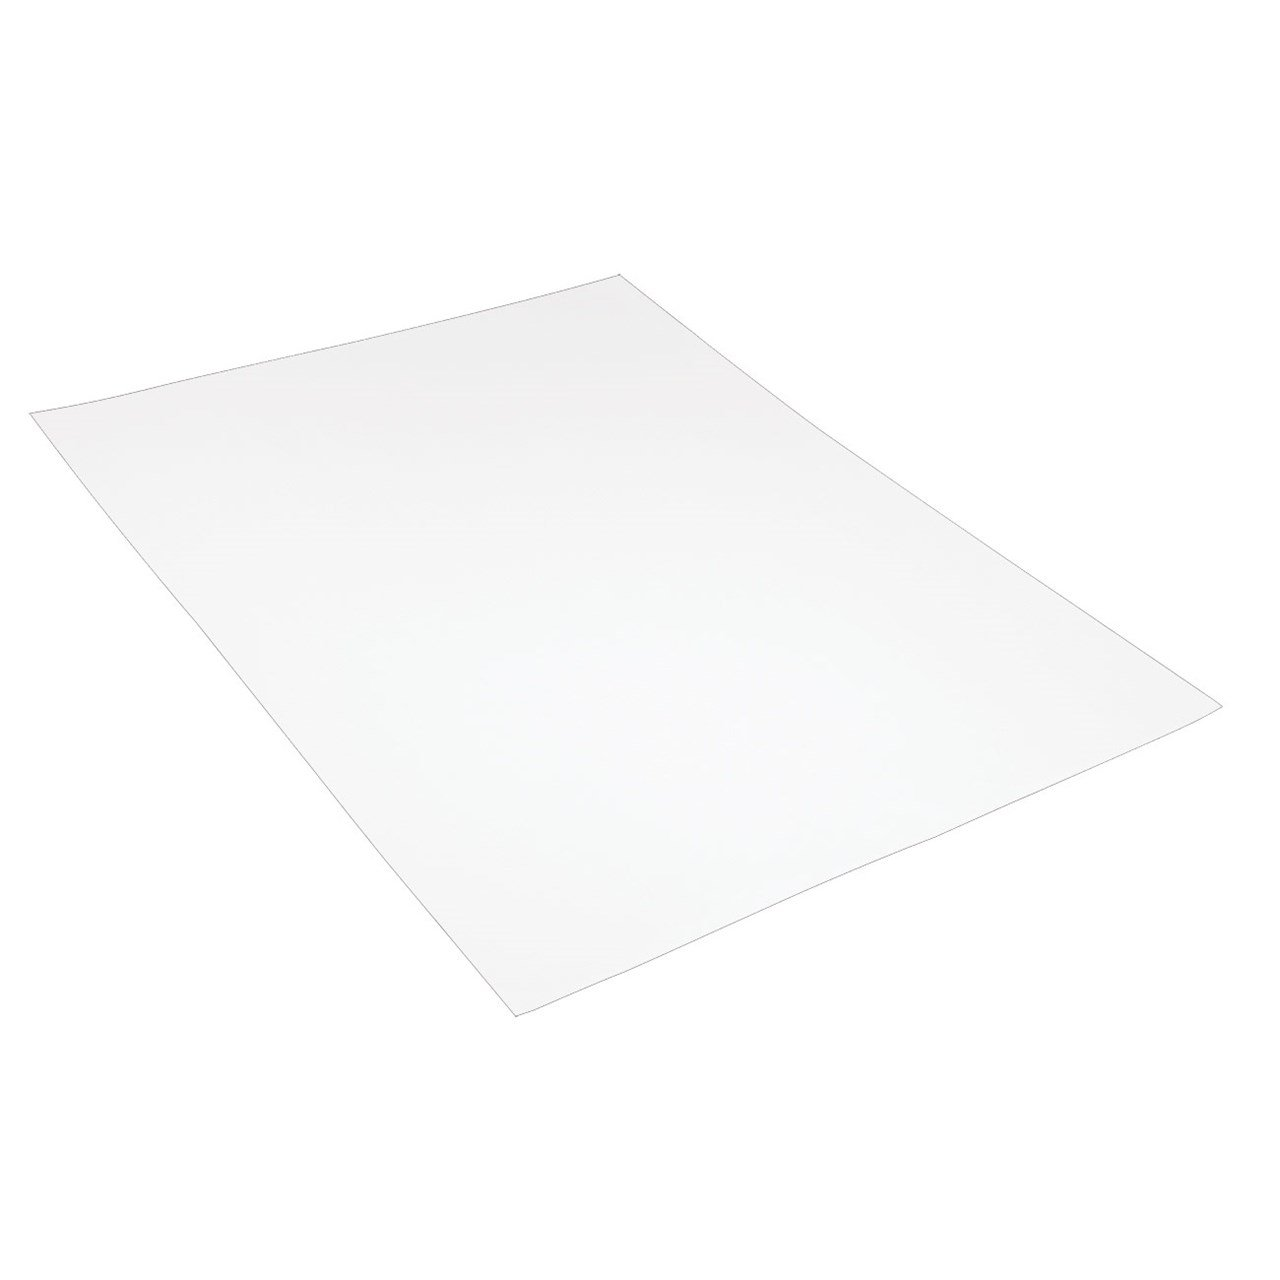 Braille Paper 500 sheets, Lightweight Paper - 70 lb - No Holes